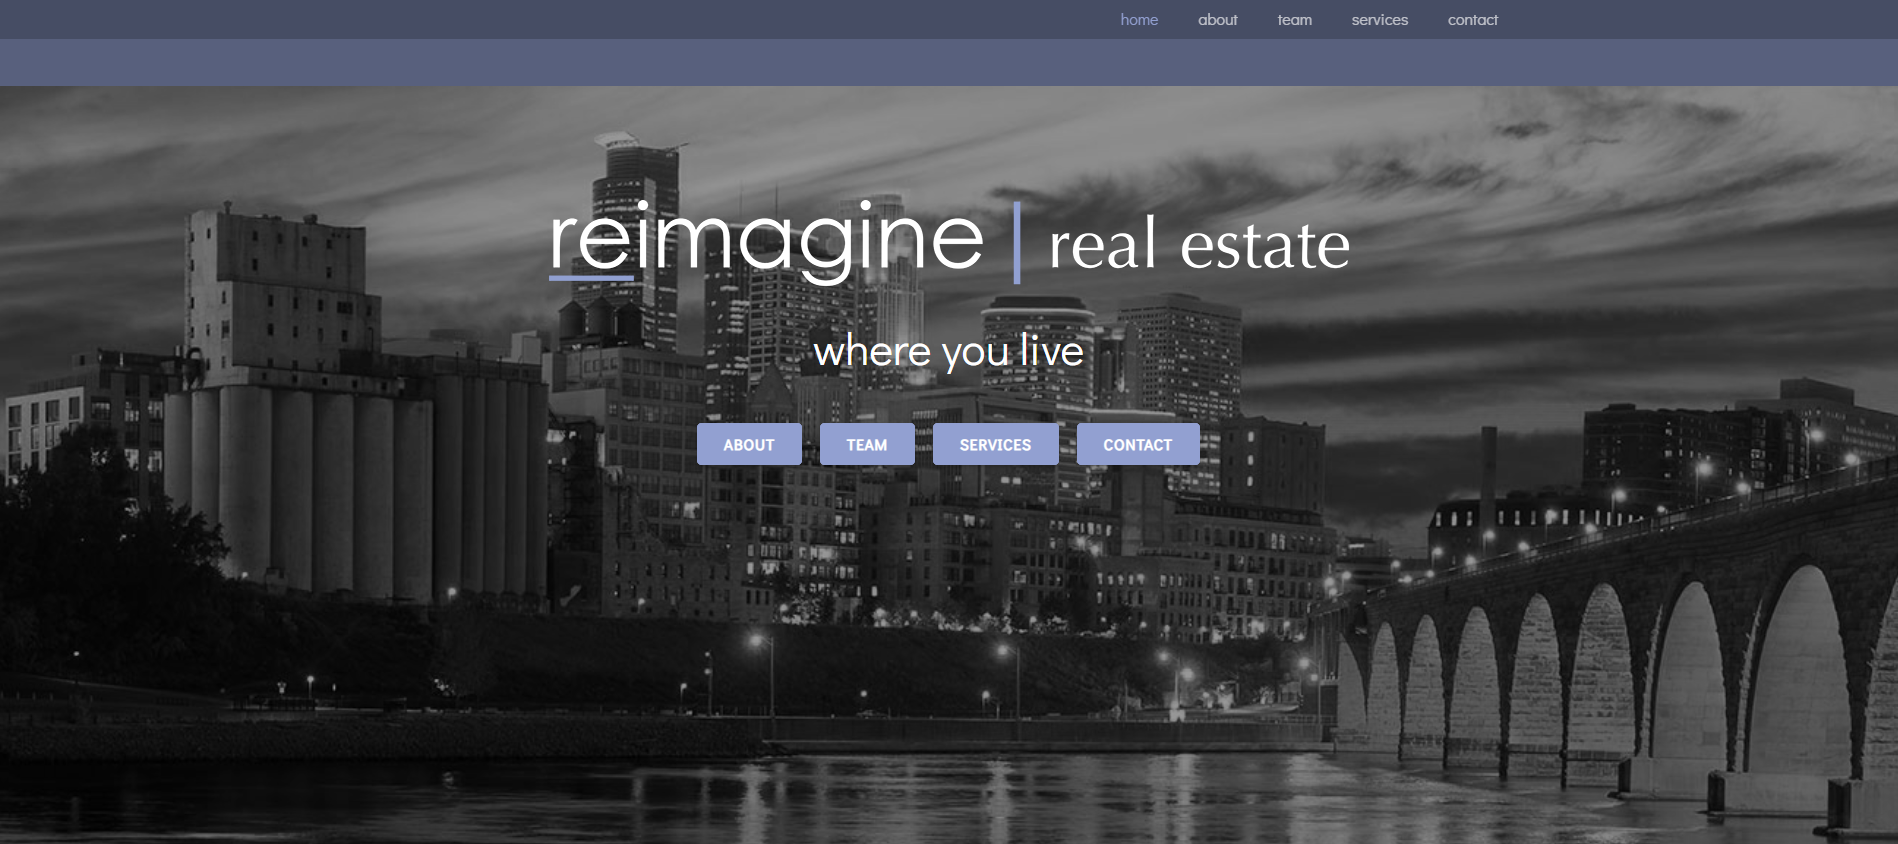 reimagine real estate